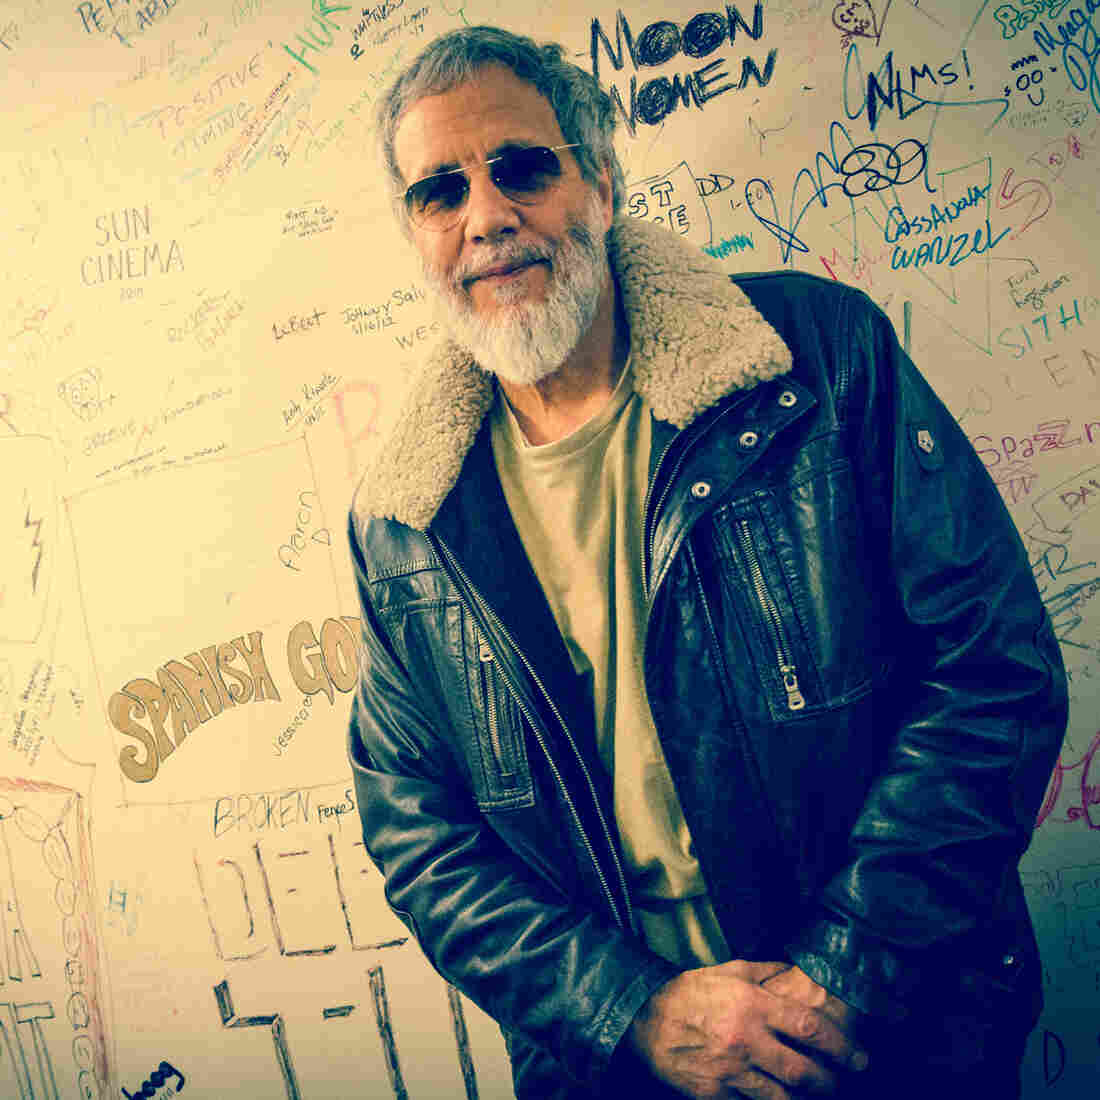 stevens muslim Stevens/islam's comments caused a backlash at the time the pop group 10,000 maniacs deleted the cat stevens song peace train, .